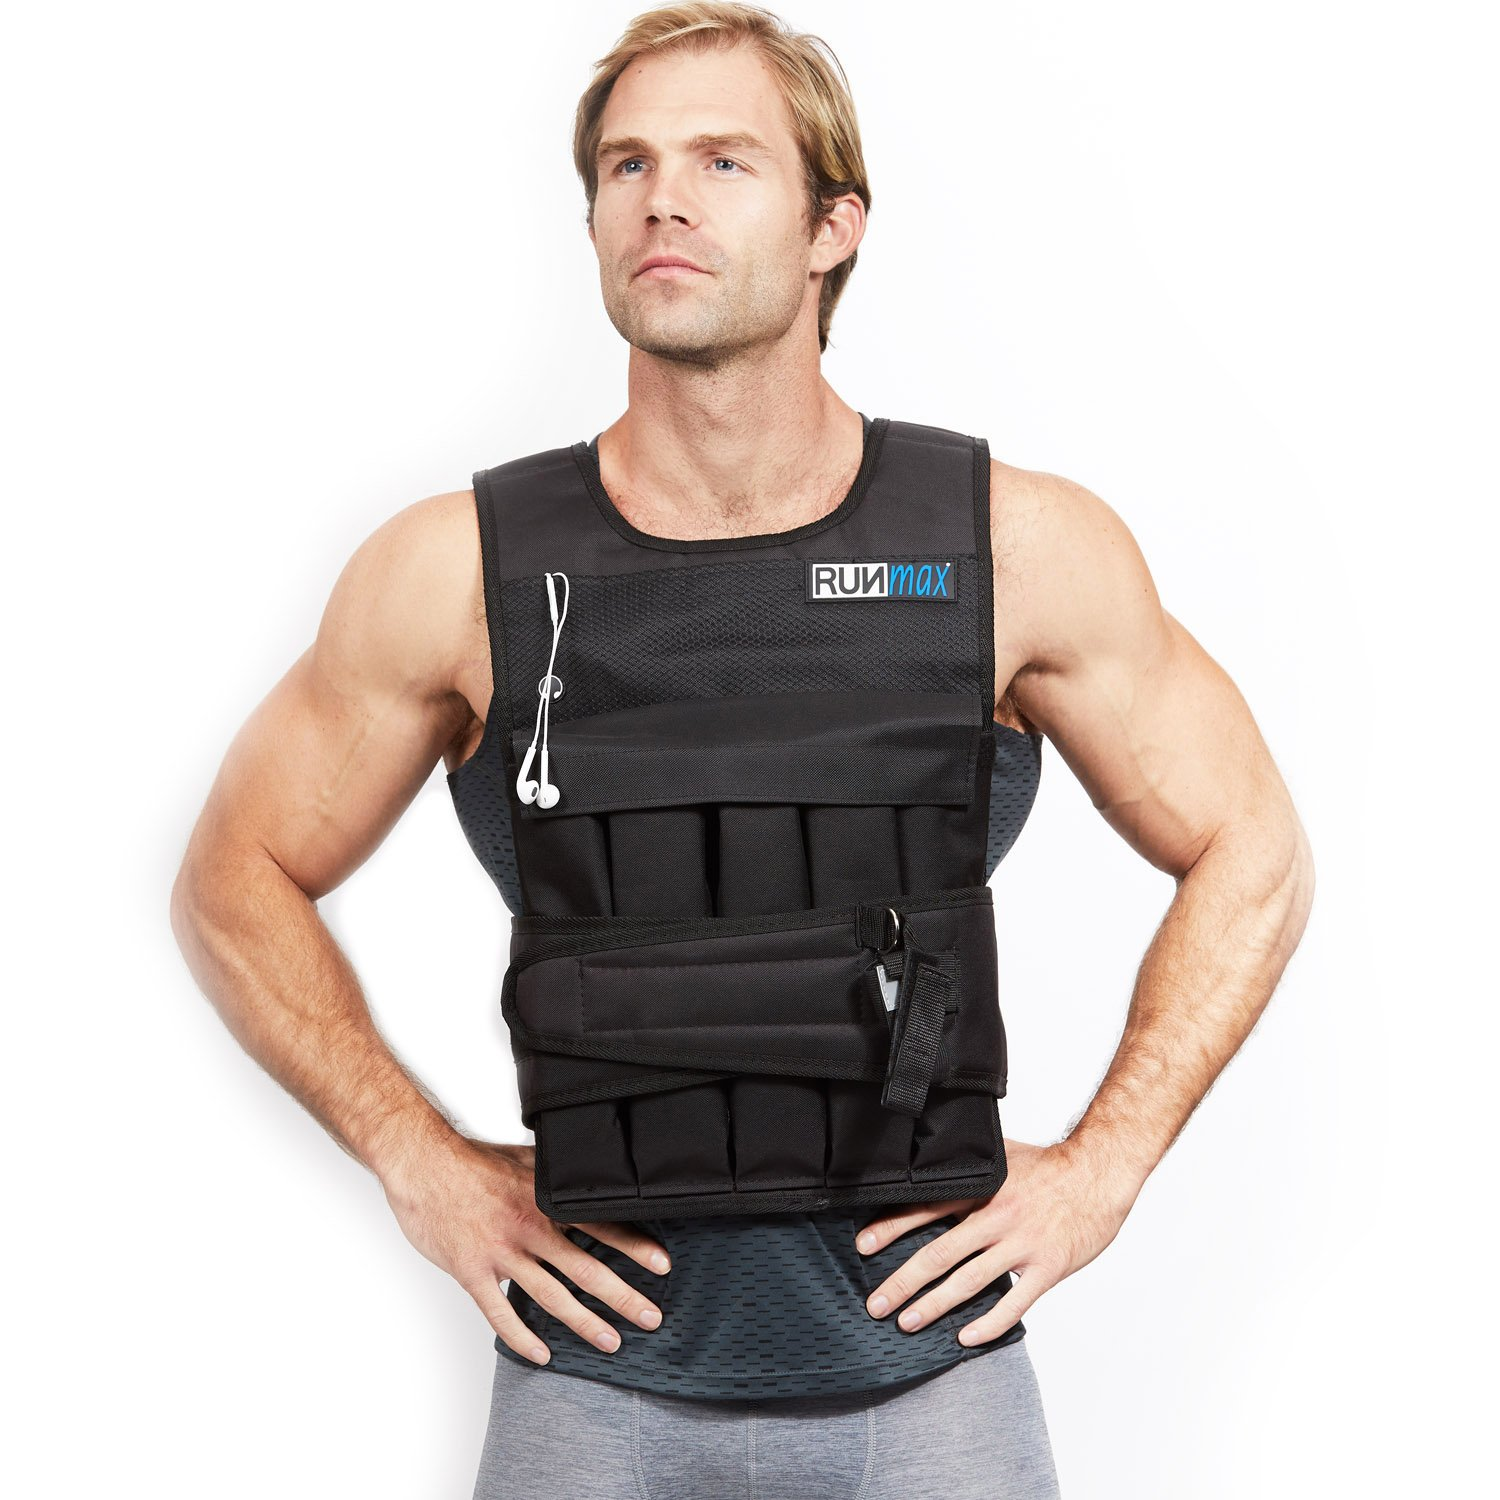 RUNFast Pro Weighted Vest 12lbs-60lbs (with Shoulder Pads, 60 LB) by RUNmax (Image #1)